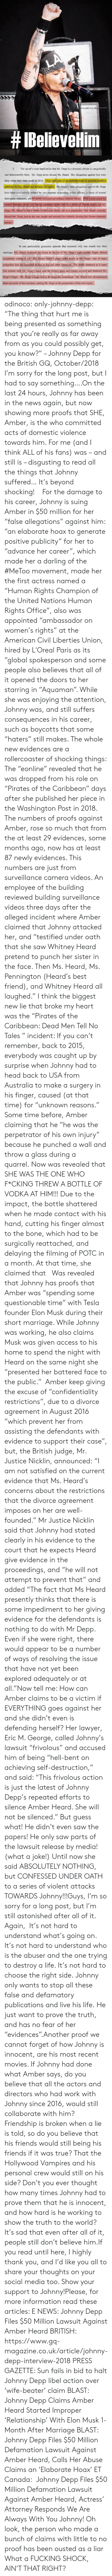 "True That: tumblr  nly-johnny-dep  # Believe!im   3. The op-ed's clear implication that Mr. Depp is a domestic abuser is categorically  and demonstrably false. Mr. Depp never abused Ms. Heard. Her allegations against him were  false when they were made in 2016. They were part of an elaborate hoax to generate positive  publicity for Ms. Heard and advance her career. Ms. Heard's false allegations against Mr. Depp  have benconclusivlrfed by two pndng polie offices, a litany of neutral  third-party witnesses, and 87 newly obtained surveillance camera videos. With a prior arrest for  violent domestic abuse and having confessed under oath to a series of violent attacks on Mr.  Depp, Ms. Heard is not a victim of domestic abuse; she is a perpetrator. Ms. Heard violently  abused Mr. Depp, just as she was caught and arrested for violently abusing her former domestic  artner.   In one particularly gruesome episode that occurred only one month into their  marriage, Ms. Heard shattered the bones in the tip of Mr. Depp's right middle finger, almost  completely cutting it off. Ms. Heard threw a glass vodka bottle at Mr. Depp-one of many  projectiles that she launched at him in this and other instances. The bottle shattered as it came  into contact with Mr. Depp's hand, and the broken glass and impact severed and shattered Mr.  Depp's finger. Mr. Depp's finger had to be surgically reattached. Ms. Heard then disseminated  false accounts of this incident, casting Mr. Depp as the perpetrator of his own injury odinoco:  only-johnny-depp:  ""The thing that hurt me is being presented as something that you're really as far away from as you could possibly get, you know?"" – Johnny Depp for the British GQ, October/2018 I'm sorry for the long post, but I had to say something….On the last 24 hours, Johnny has been in the news again, but now showing more proofs that SHE, Amber, is the who committed acts of domestic violence towards him. For me (and I think ALL of his fans) was – and still is – disgusting to read all the things that Johnny suffered… It's beyond shocking!    For the damage to his career, Johnny is suing Amber in $50 million for her ""false allegations"" against him: ""an elaborate hoax to generate positive publicity"" for her to ""advance her career"", which made her a darling of the #MeToo movement, made her the first actress named a ""Human Rights Champion of the United Nations Human Rights Office"", also was appointed ""ambassador on women's rights"" at the American Civil Liberties Union, hired by L'Oreal Paris as its ""global spokesperson and some people also believes that all of it opened the doors to her starring in ""Aquaman"". While she was enjoying the attention, Johnny was, and still suffers consequences in his career, such as boycotts that some ""haters"" still makes. The whole new evidences are a rollercoaster of shocking things:     The ""eonline"" revealed that he was dropped from his role on ""Pirates of the Caribbean"" days after she published her piece in the Washington Post in 2018.    The numbers of proofs against Amber, rose so much that from the at least 29 evidences, some months ago, now has at least 87 newly evidences. This numbers are just from surveillance camera videos.    An employee of the building reviewed building surveillance videos three days after the alleged incident where Amber claimed that Johnny attacked her, and ""testified under oath that she saw Whitney Heard pretend to punch her sister in the face. Then Ms. Heard, Ms. Pennington (Heard's best friend), and Whitney Heard all laughed.""   I think the biggest new lie that broke my heart was the ""Pirates of the Caribbean: Dead Men Tell No Tales  "" incident: If you can't remember, back to 2015, everybody was caught up by surprise when Johnny had to head back to USA from Australia to make a surgery in his finger, caused (at that time) for ""unknown reasons."" Some time before, Amber   claiming that he   ""he was the perpetrator of his own injury"" because he punched a wall and throw a glass during a quarrel. Now was revealed that SHE WAS THE ONE WHO F*CKING THREW A BOTTLE OF VODKA AT HIM!!! Due to the impact, the bottle shattered when he made contact with his hand, cutting his finger almost to the bone, which had to be surgically reattached, and delaying the filming of POTC in a month. At that time, she claimed that        Was revealed that Johnny has proofs that Amber was ""spending some questionable time"" with Tesla founder Elon Musk during their short marriage. While Johnny was working, he also claims Musk was given access to his home to spend the night with Heard on the same night she ""presented her battered face to the public.""   Amber keep giving the excuse of ""confidentiality restrictions"", due to a divorce agreement in August 2016 ""which prevent her from assisting the defendants with evidence to support their case"", but, the British judge, Mr. Justice Nicklin, announced: ""I am not satisfied on the current evidence that Ms. Heard's concerns about the restrictions that the divorce agreement imposes on her are well-founded."" Mr Justice Nicklin said that Johnny had stated clearly in his evidence to the court that he expects Heard give evidence in the proceedings, and ""he will not attempt to prevent that"" and added ""The fact that Ms Heard presently thinks that there is some impediment to her giving evidence for the defendants is nothing to do with Mr Depp. Even if she were right, there would appear to be a number of ways of resolving the issue that have not yet been explored adequately or at all.""Now tell me: How can Amber claims to be a victim if EVERYTHING goes against her and she didn't even is defending herself? Her lawyer, Eric M. George, called Johnny's lawsuit ""frivolous"" and accused him of being ""hell-bent on achieving self-destruction,"" and said: ""This frivolous action is just the latest of Johnny Depp's repeated efforts to silence Amber Heard. She will not be silenced."" But guess what! He didn't even saw the papers! He only saw parts of the lawsuit release by media! (what a joke!) Until now she said ABSOLUTELY NOTHING, but CONFESSED UNDER OATH to a series of violent attacks TOWARDS Johnny!!!Guys, I'm so sorry for a long post, but I'm still astonished after all of it. Again,   It's not hard to understand what's going on. It's not hard to understand who is the abuser and the one trying to destroy a life. It's not hard to choose the right side.   Johnny only wants to stop all these false and defamatory publications and live his life. He just want to prove the truth, and has no fear of her ""evidences"".Another proof we cannot forget of how Johnny is innocent, are his most recent movies. If Johnny had done what Amber says, do you believe that all the actors and directors who had work with Johnny since 2016, would still collaborate with him? Friendship is broken when a lie is told, so do you believe that his friends would still being his friends if it was true? That the Hollywood Vampires and his personal crew would still on his side? Don't you ever thought how many times Johnny had to prove them that he is innocent, and how hard is he working to show the truth to the world? It's sad that even after all of it, people still don't believe him.If you read until here, I highly thank you, and I'd like you all to share your thoughts on your social media too. Show your support to Johnny!Please, for more information read these articles: E NEWS:   Johnny Depp Files $50 Million Lawsuit Against Amber Heard       BRITISH: https://www.gq-magazine.co.uk/article/johnny-depp-interview-2018     PRESS GAZETTE:   Sun fails in bid to halt Johnny Depp libel action over 'wife-beater' claim        BLAST:   Johnny Depp Claims Amber Heard Started Improper 'Relationship' With Elon Musk 1-Month After Marriage        BLAST:   Johnny Depp Files $50 Million Defamation Lawsuit Against Amber Heard, Calls Her Abuse Claims an 'Elaborate Hoax'        ET Canada:   Johnny Depp Files $50 Million Defamation Lawsuit Against Amber Heard, Actress' Attorney Responds  We Are Always With You Johnny!   Oh look, the person who made a bunch of claims with little to no proof has been ousted as a liar What a FUCKING SHOCK, AIN'T THAT RIGHT?"